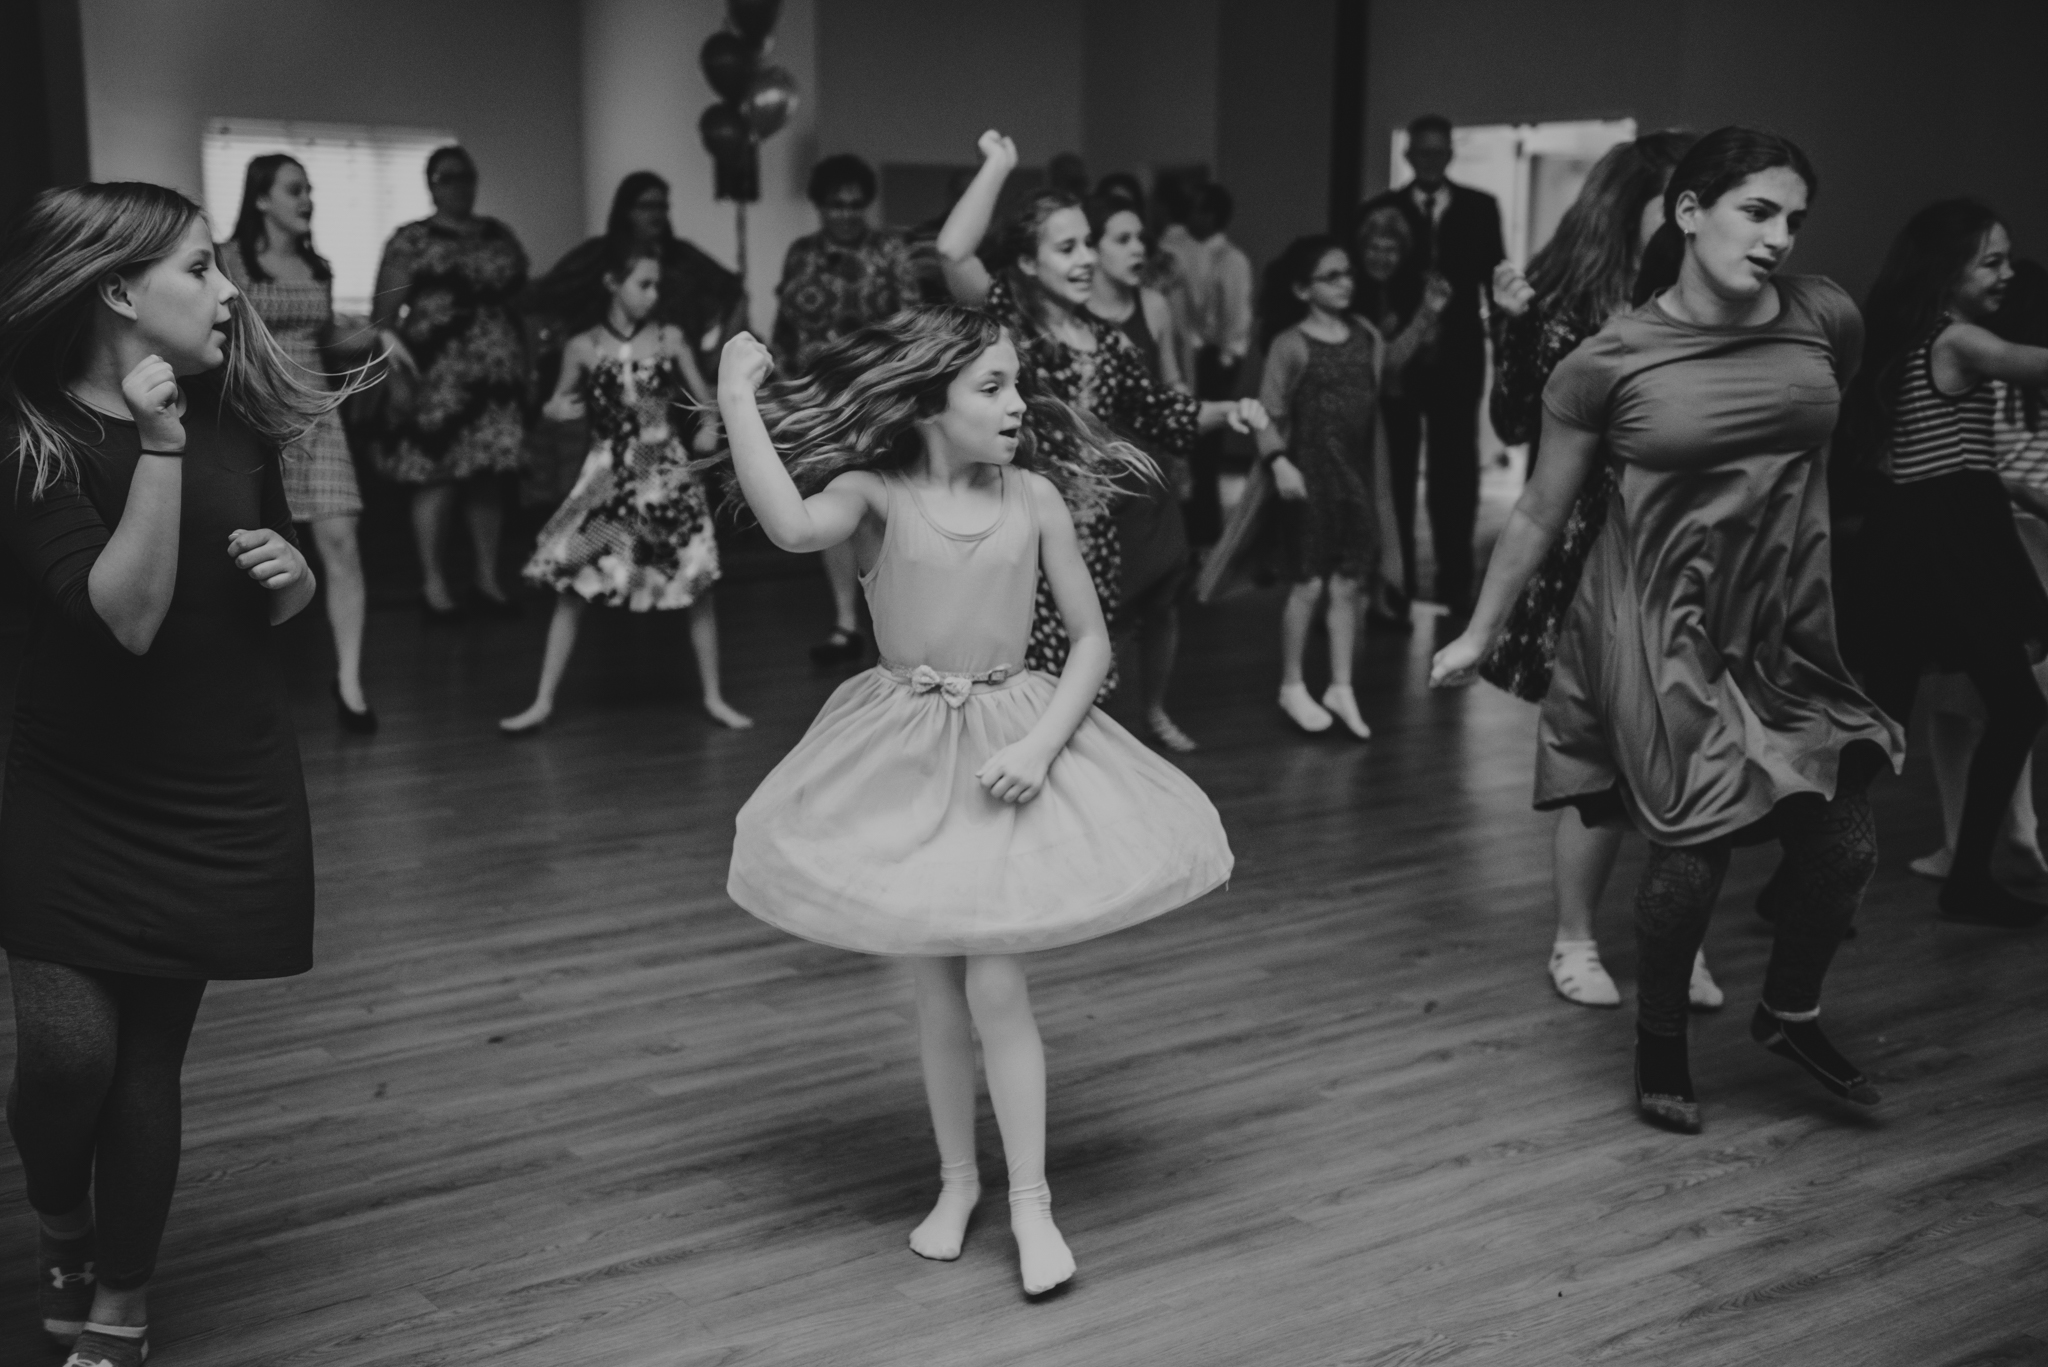 A girl spins around while dancing during the mitzvah reception at Temple Beth Or in Raleigh.